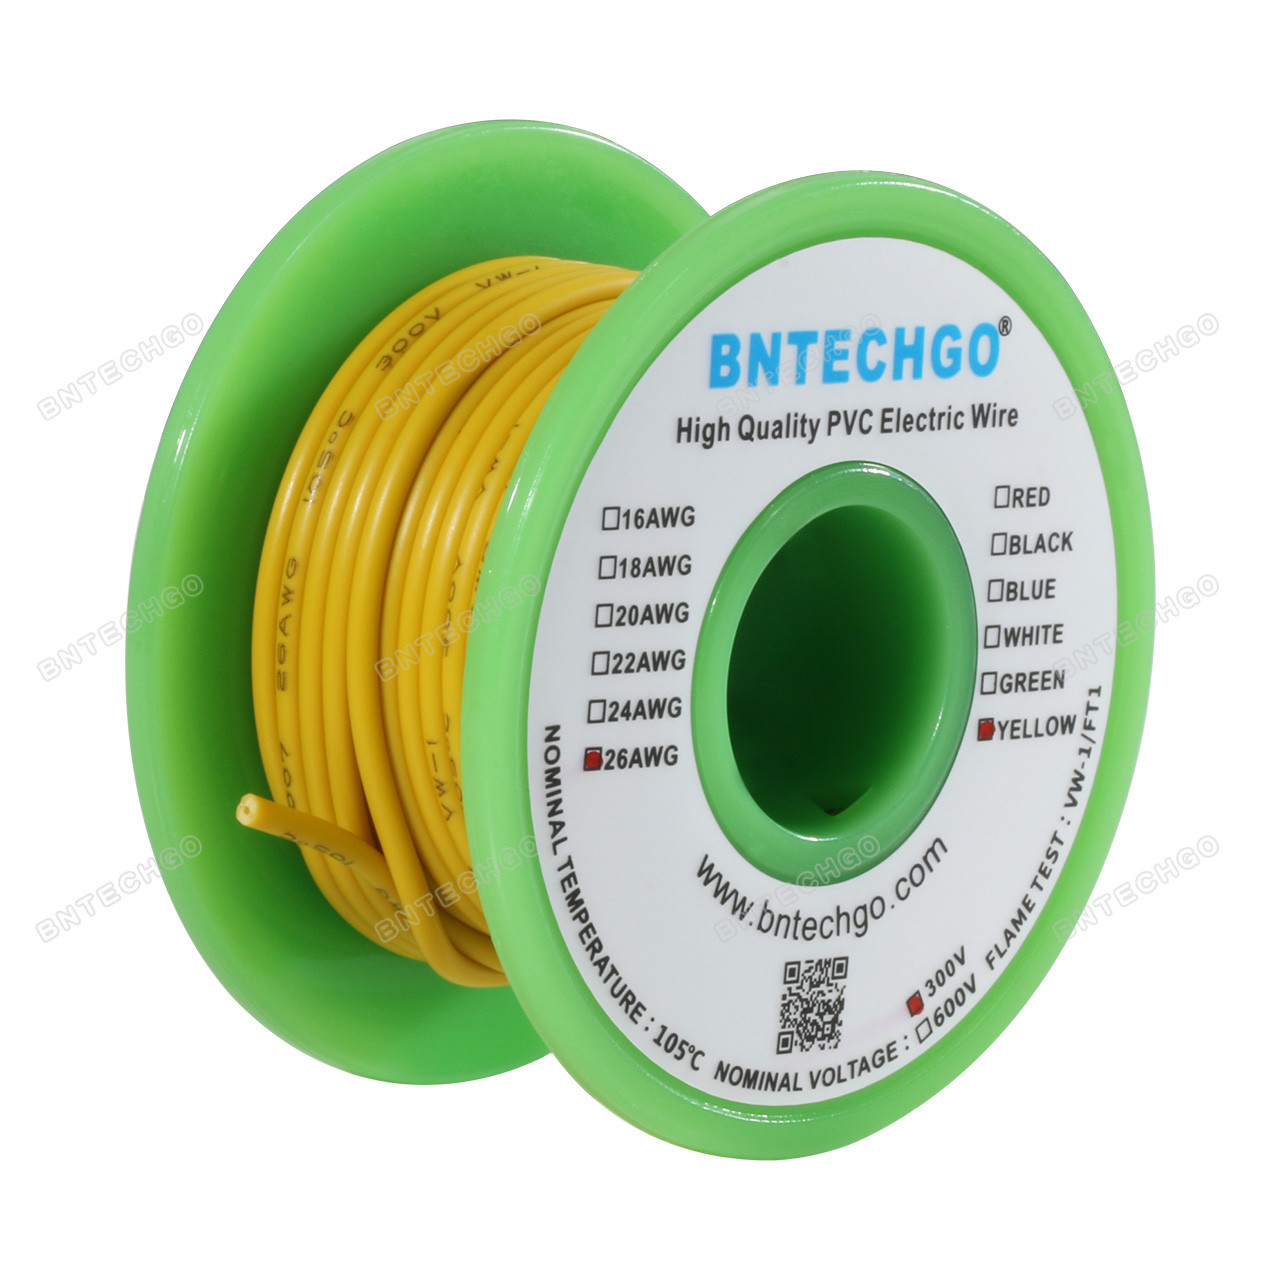 BNTECHGO 26 AWG 1007 Electric Wire 26 Gauge PVC 1007 Wire Stranded Wire Hook Up Wire 300V Stranded Tinned Copper Wire Red and Black Each Color 25 ft Per Reel for DIY